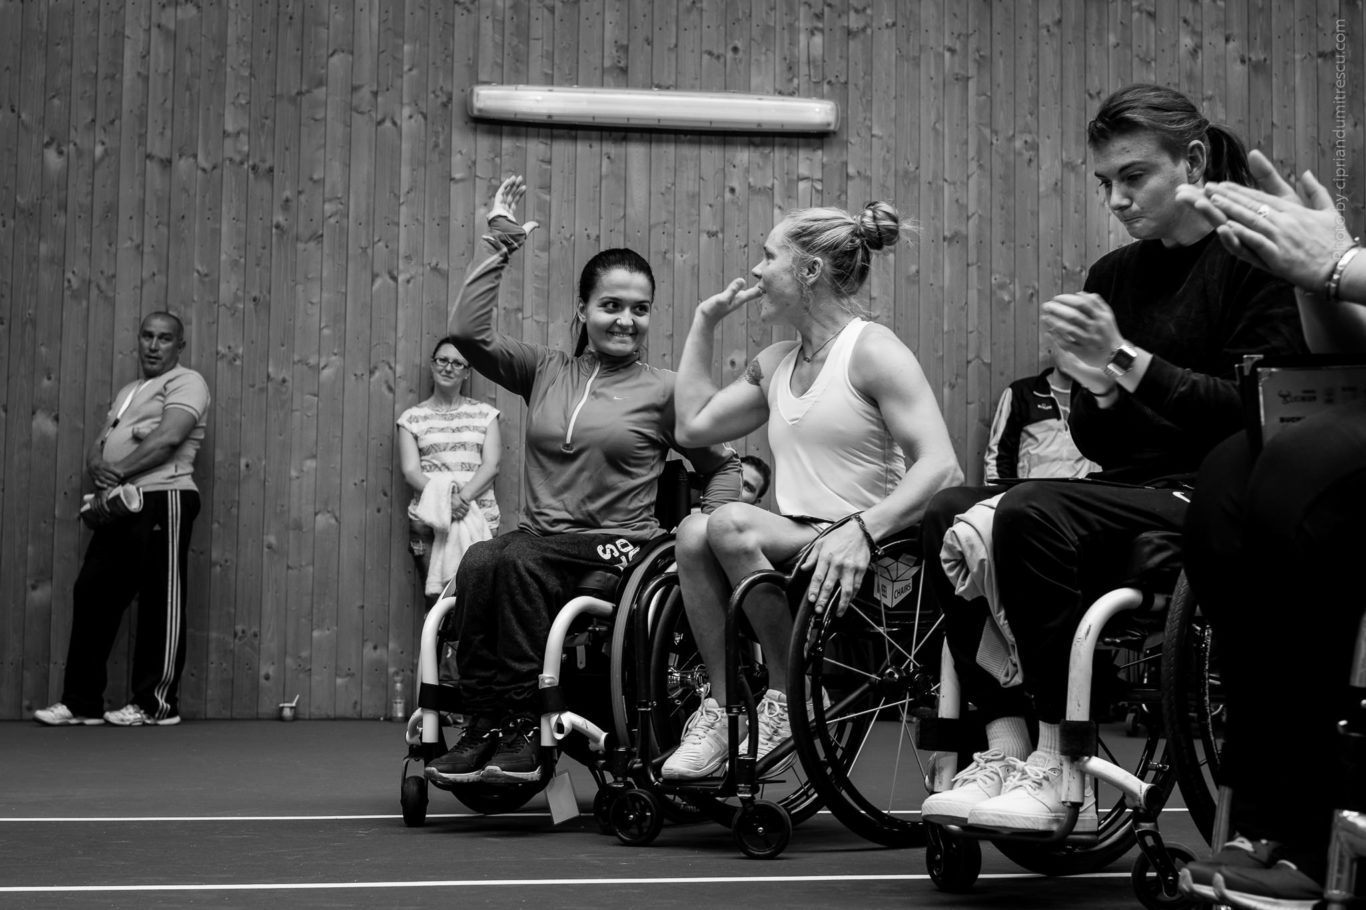 036-Bucharest-Open-Wheelchair-2016-Day-One-Photographer-Ciprian-Dumitrescu